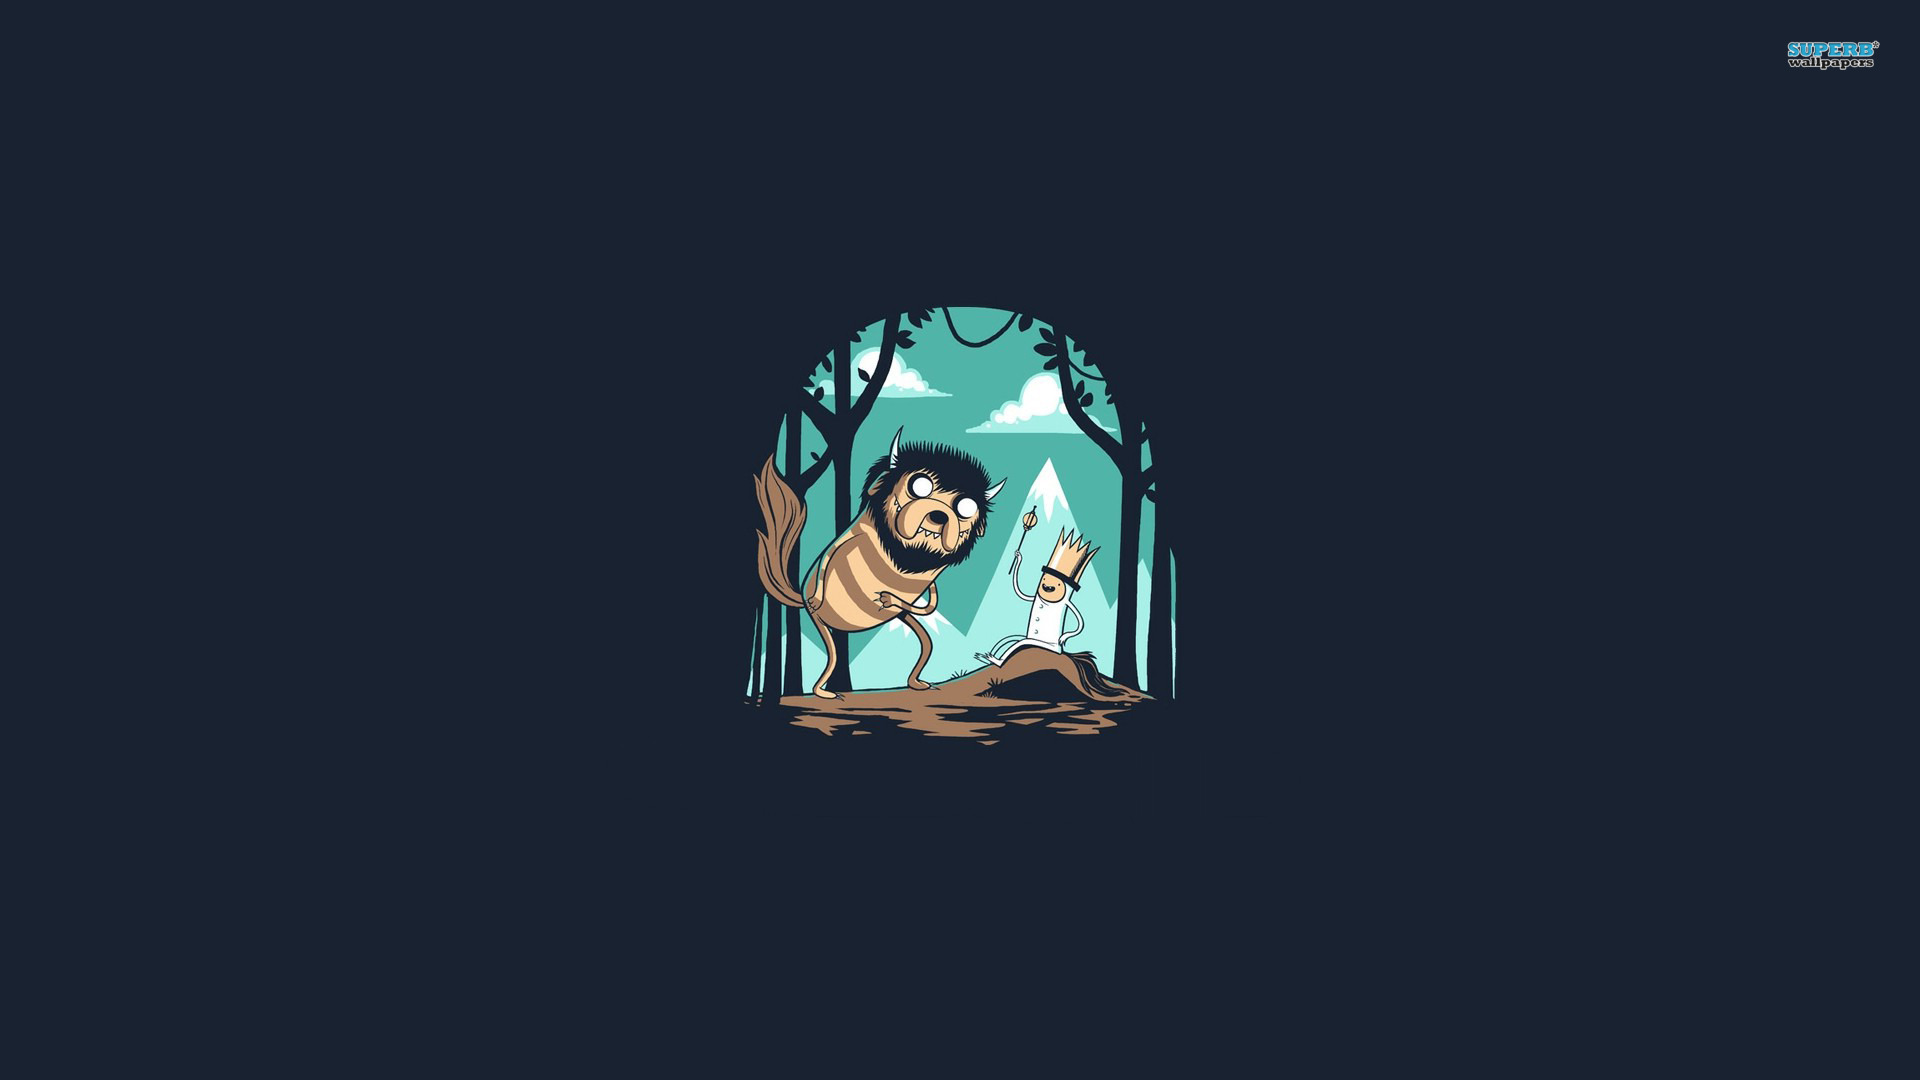 Adventure time wallpaper 1920x1080 37273 adventure time wallpaper thecheapjerseys Choice Image